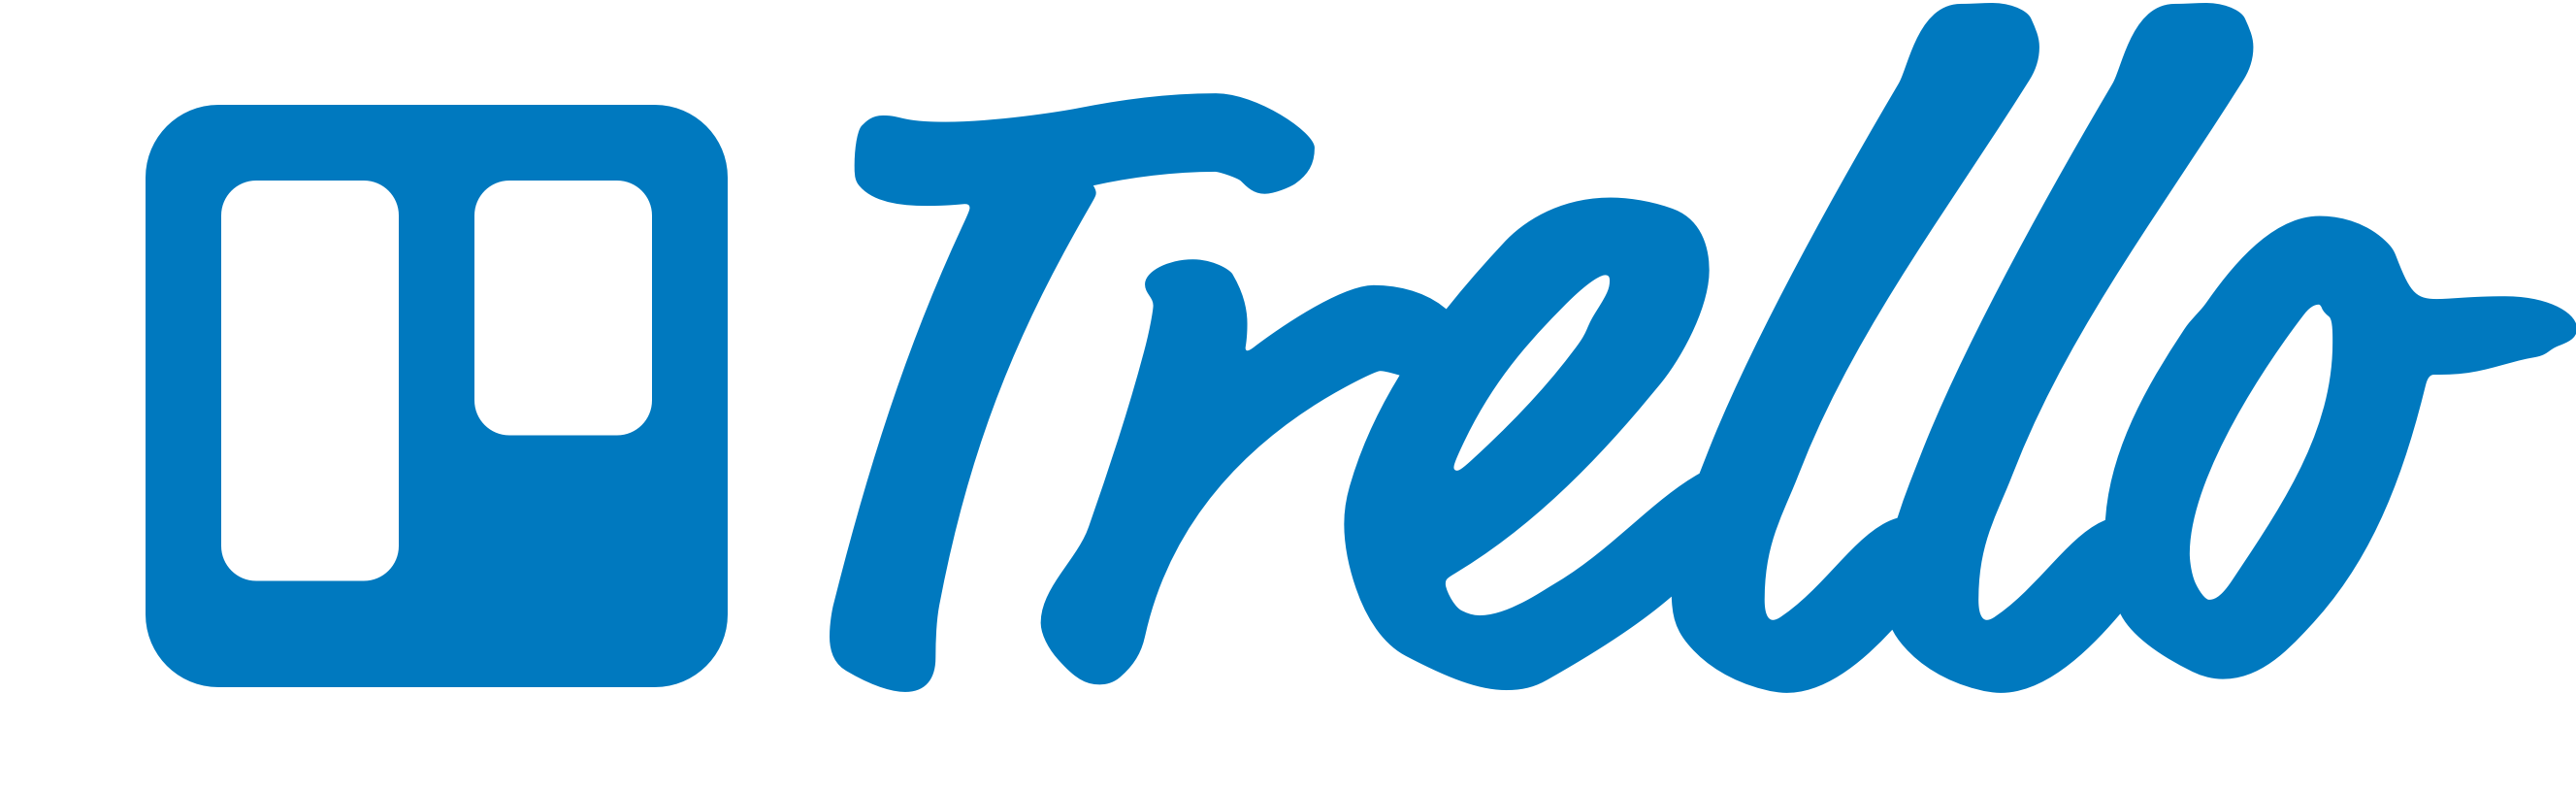 Logo do Trello